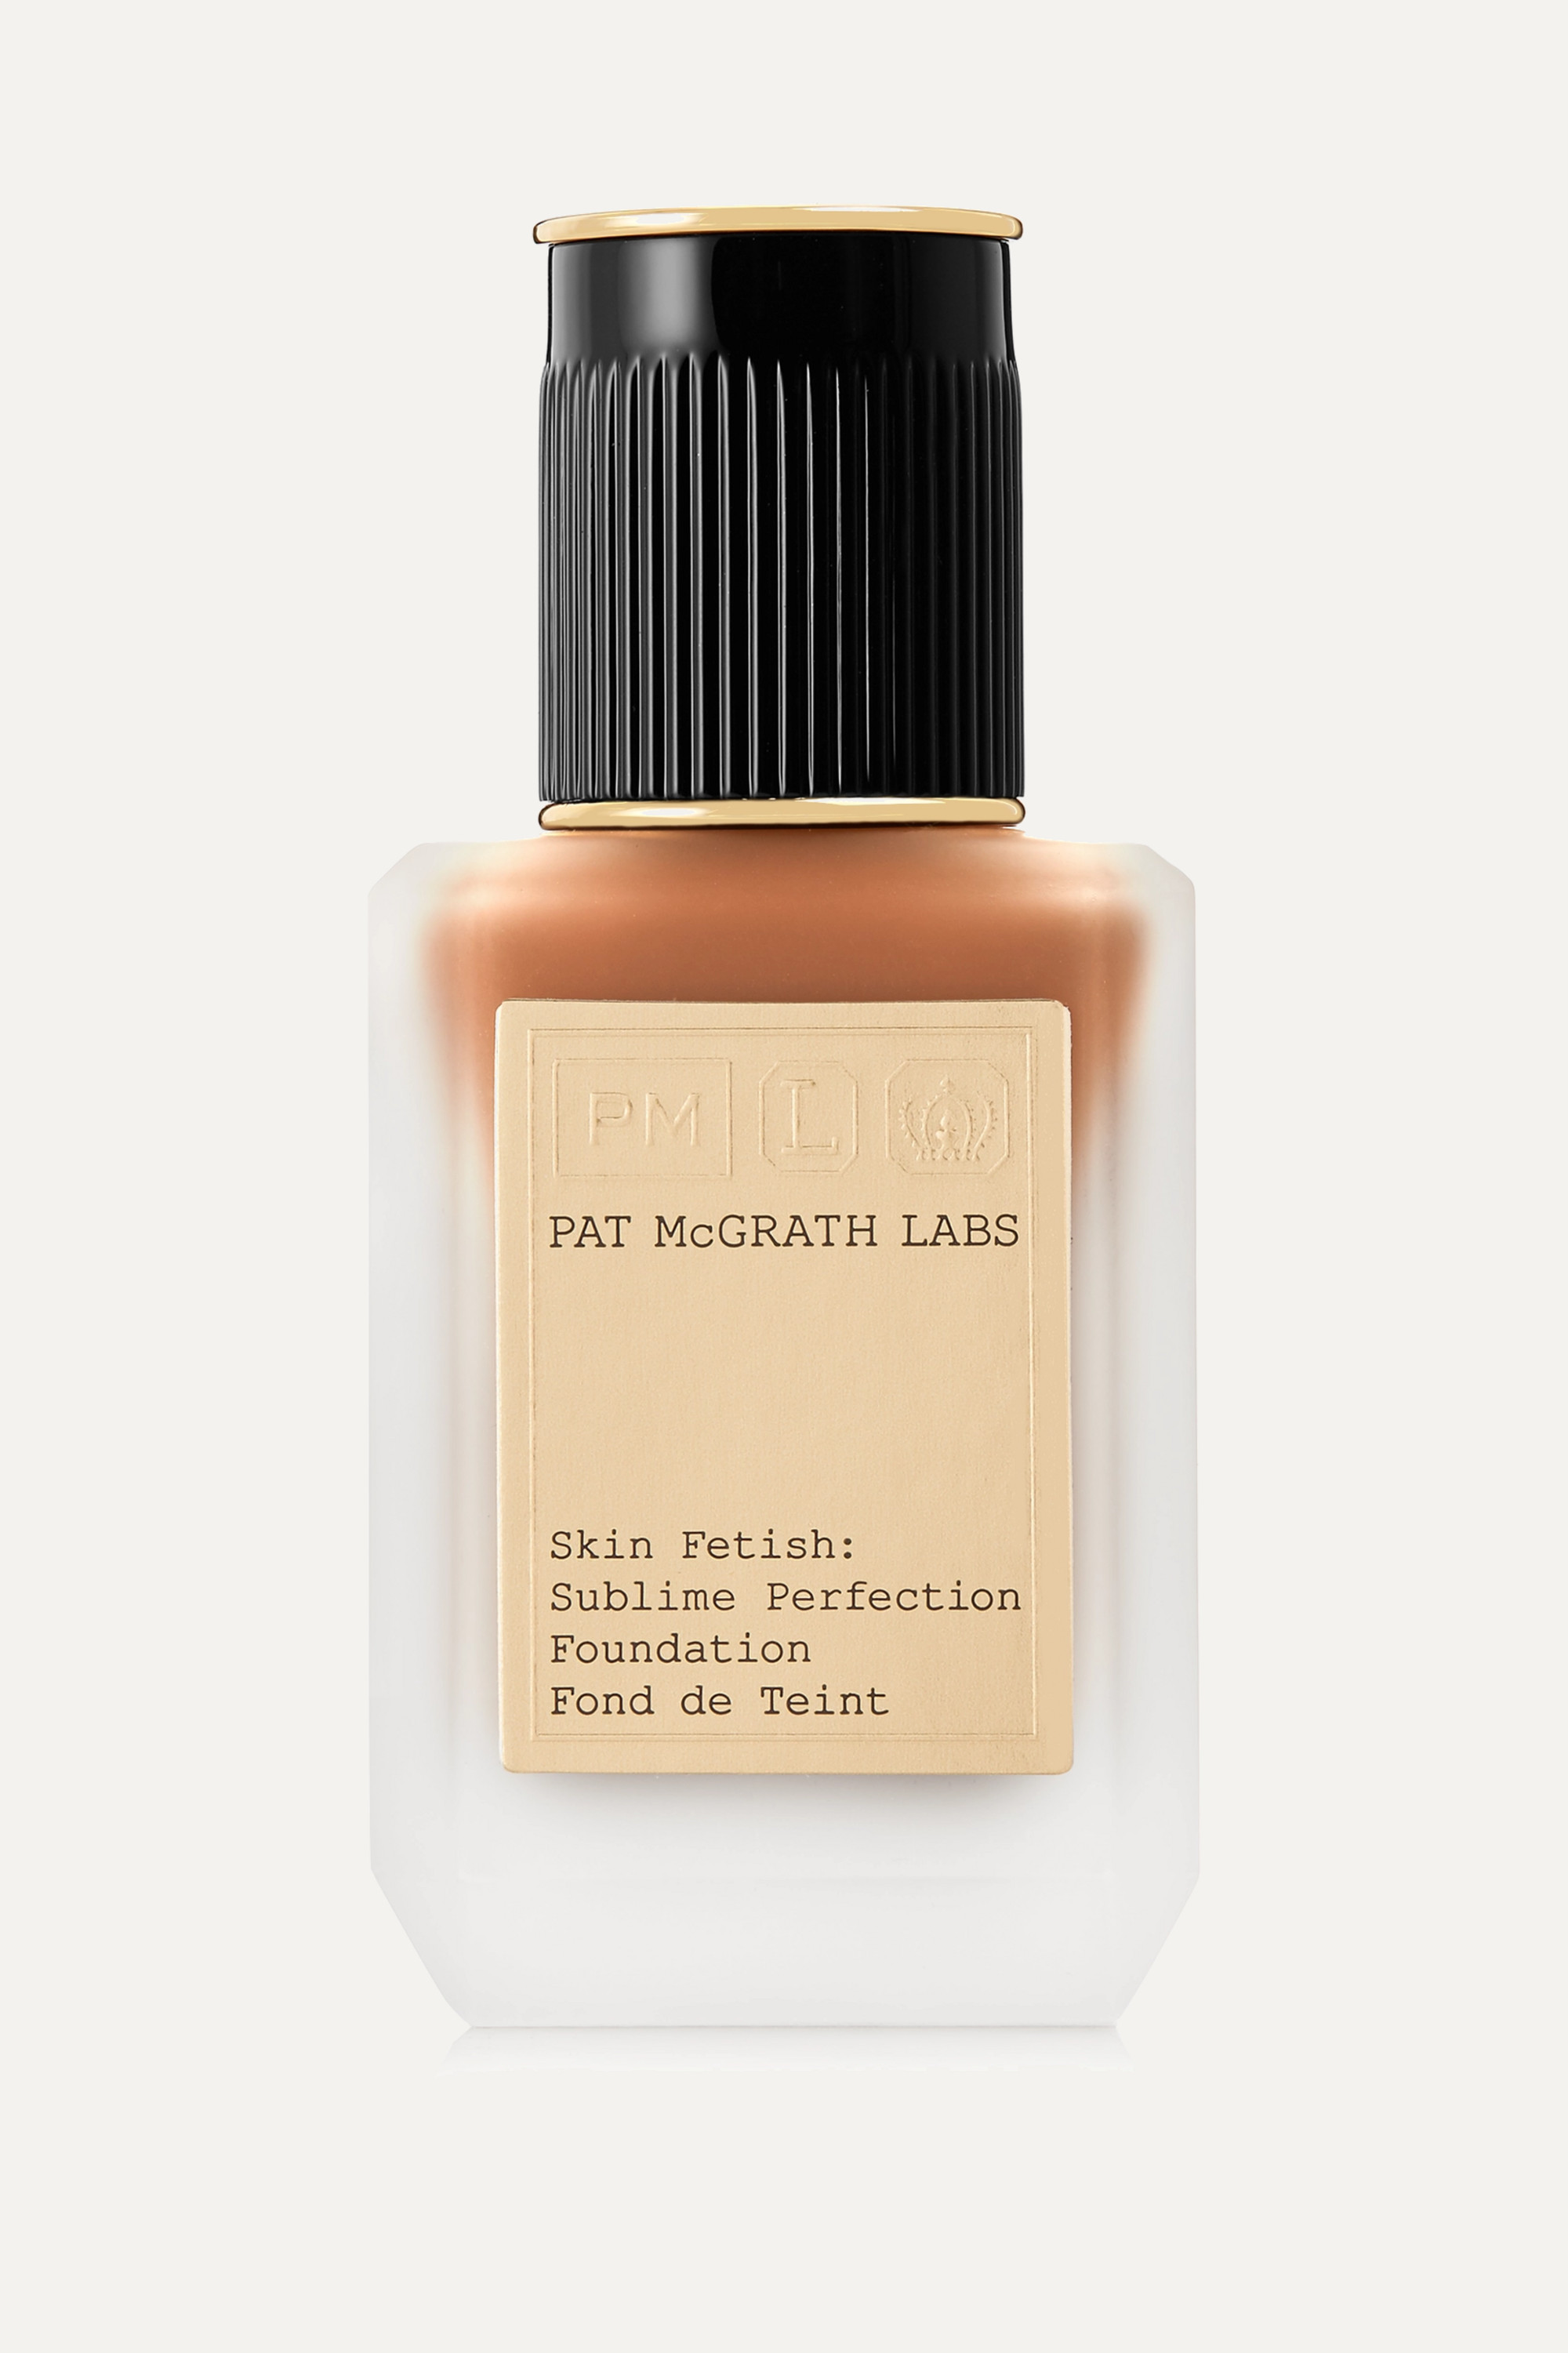 Pat McGrath Labs Skin Fetish: Sublime Perfection Foundation – Medium Deep 25, 35 ml – Foundation